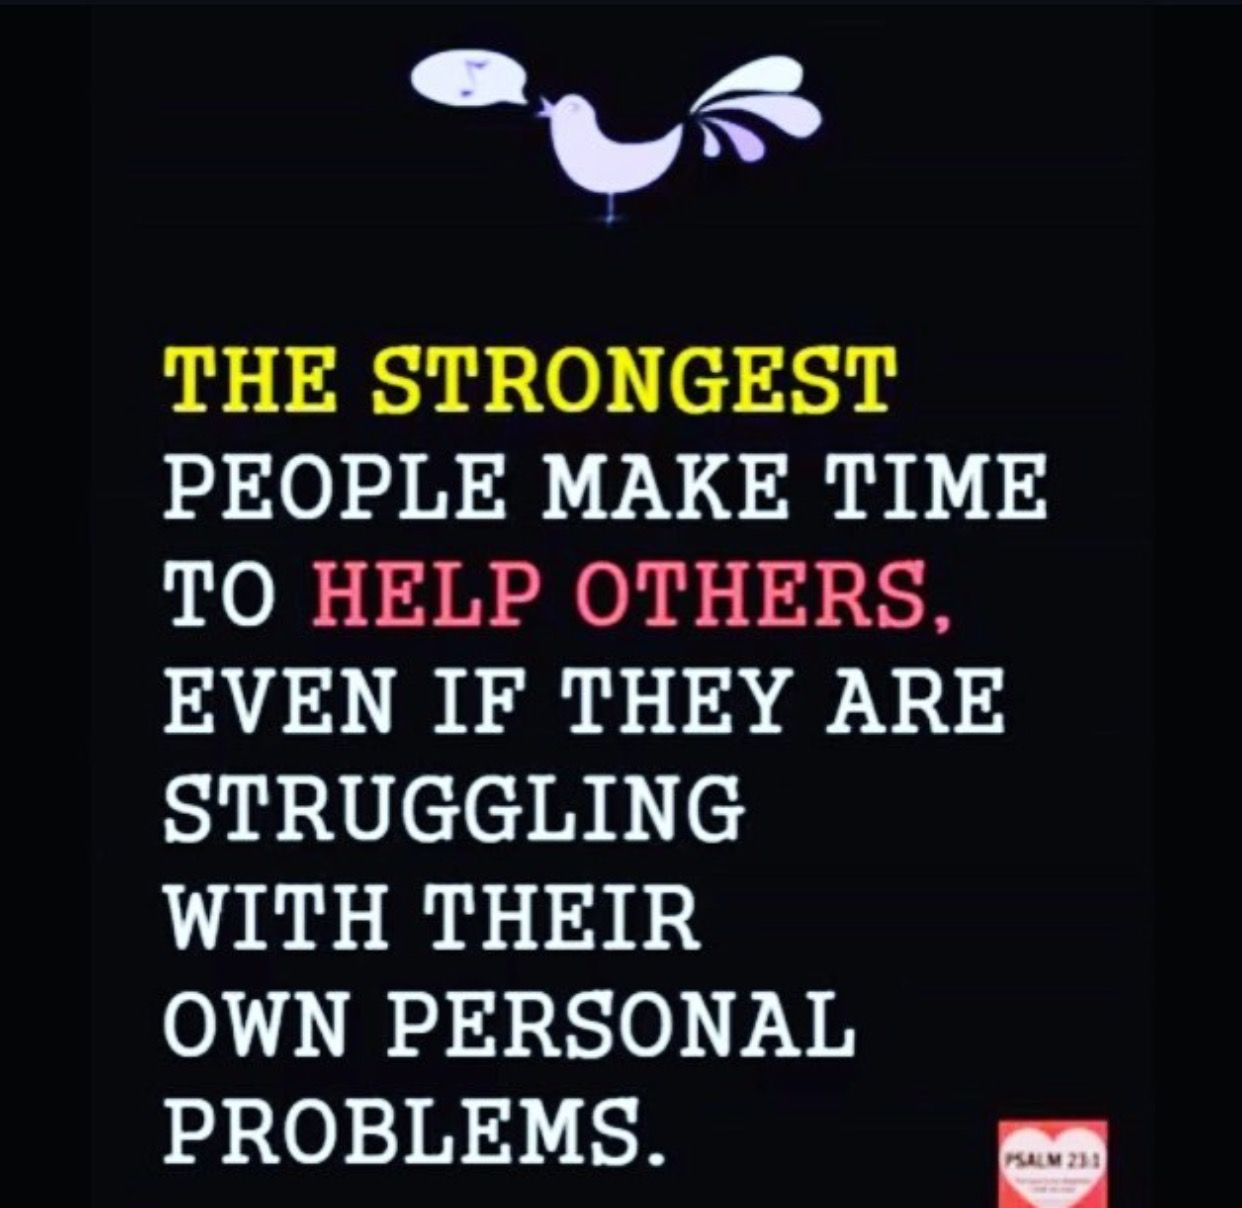 The strongest people help others!